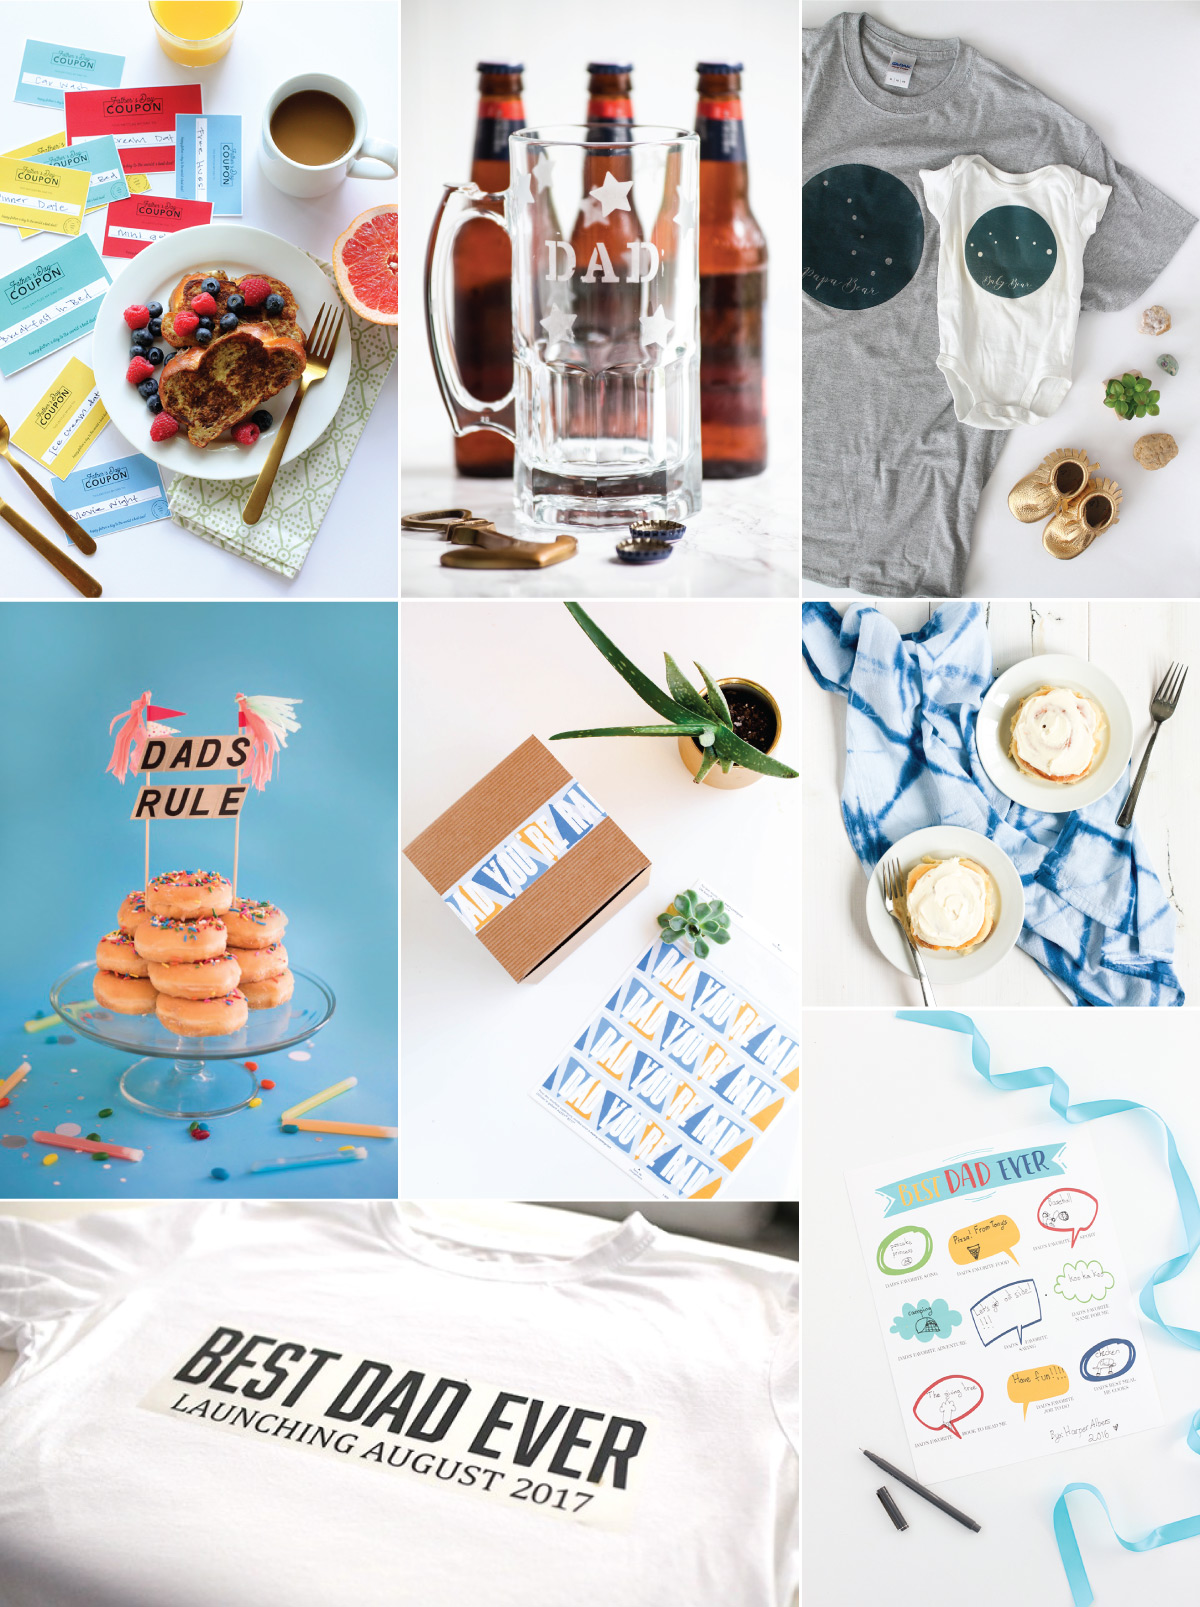 A round-up of fun and fabulous Father's Day ideas, including delicious breakfast-in-bed recipes, easy DIY gift ideas, free printables, and more!